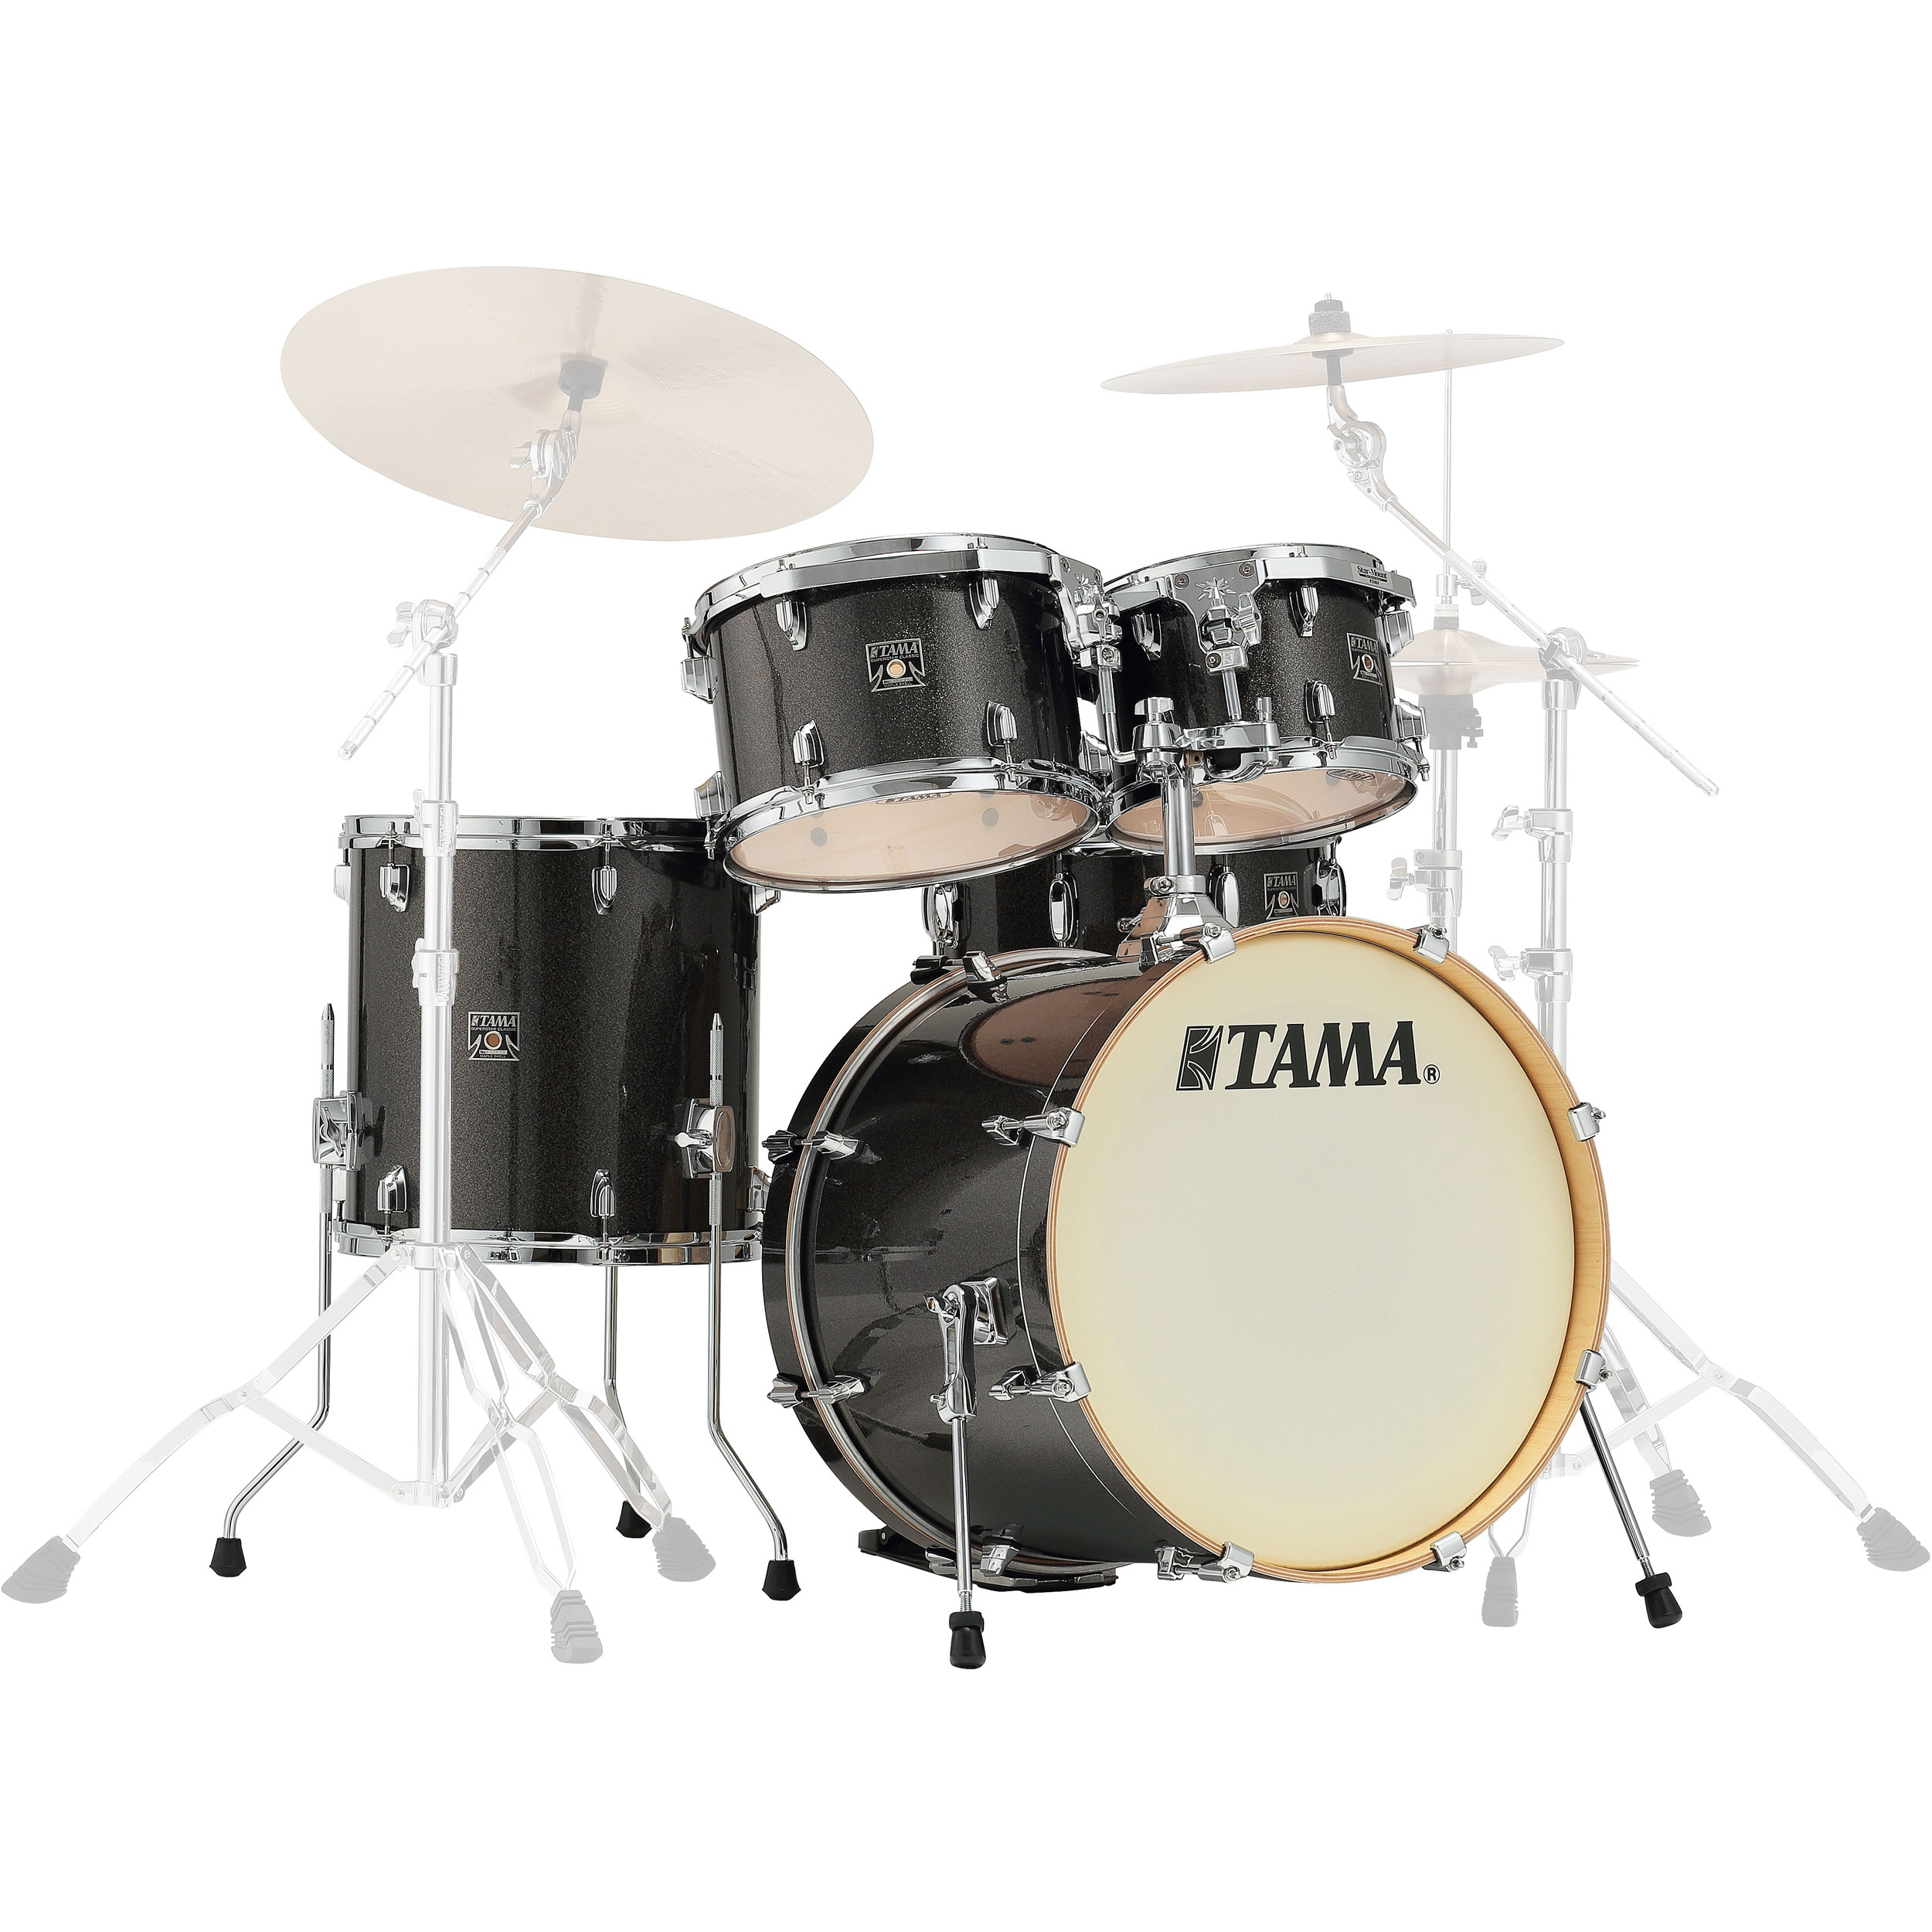 "Tama Superstar Classic 5-Piece Drum Set Shell Pack (20"" Bass, 10/12/14"" Toms, 14"" Snare)"